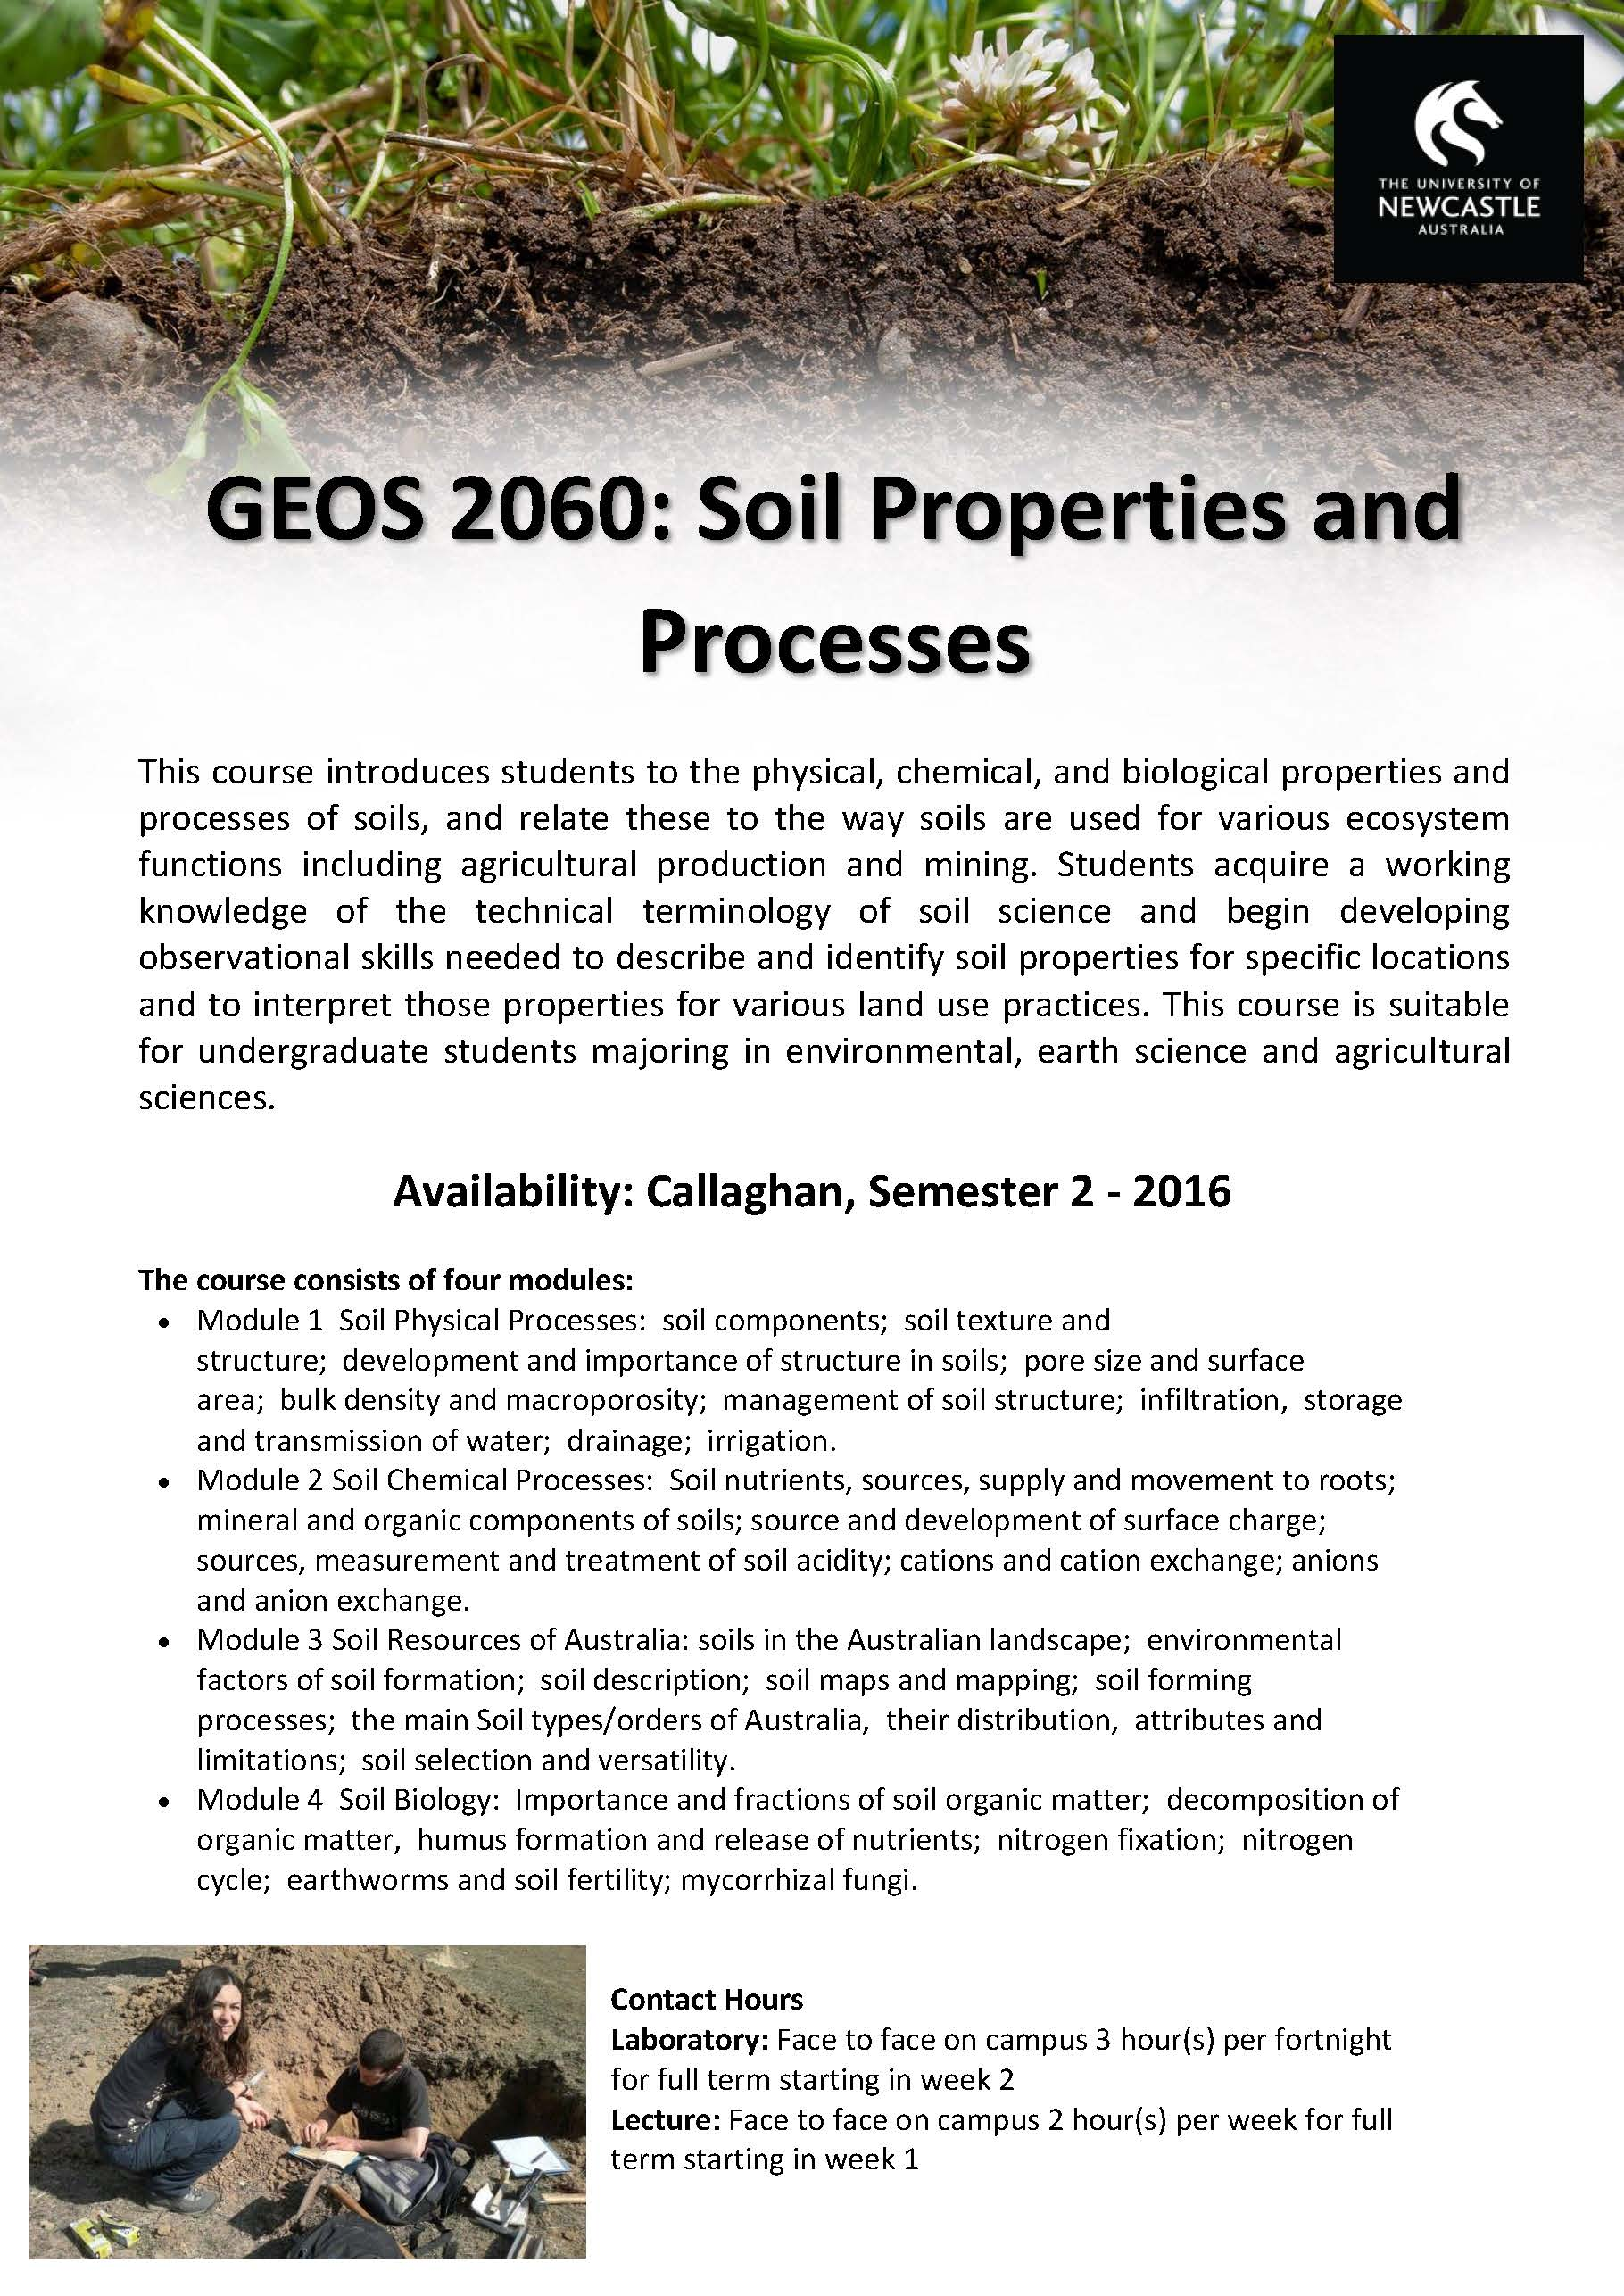 GEOS 2060 poster